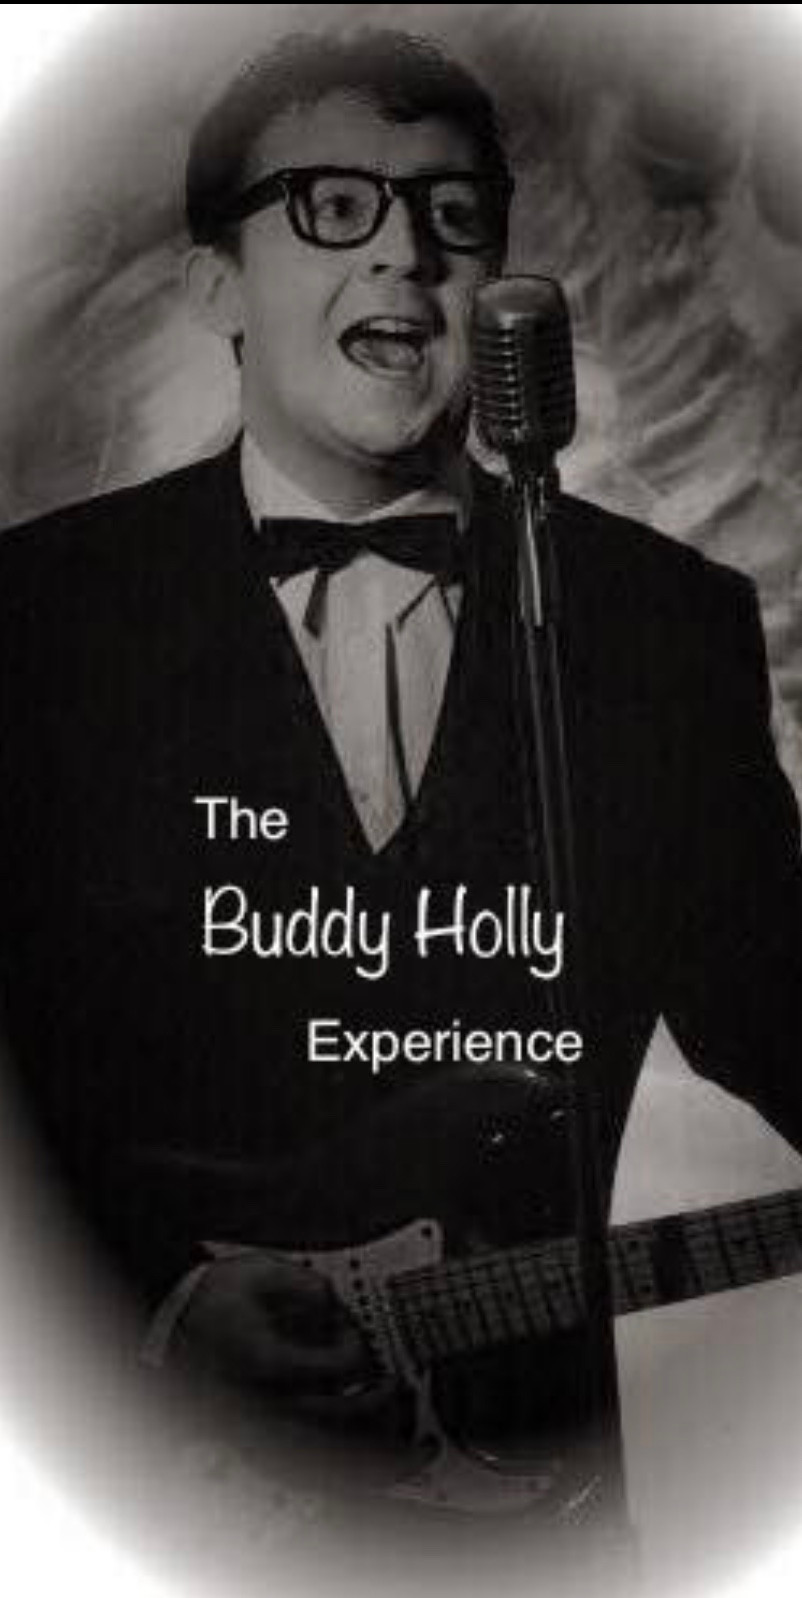 The Buddy Holly Experience